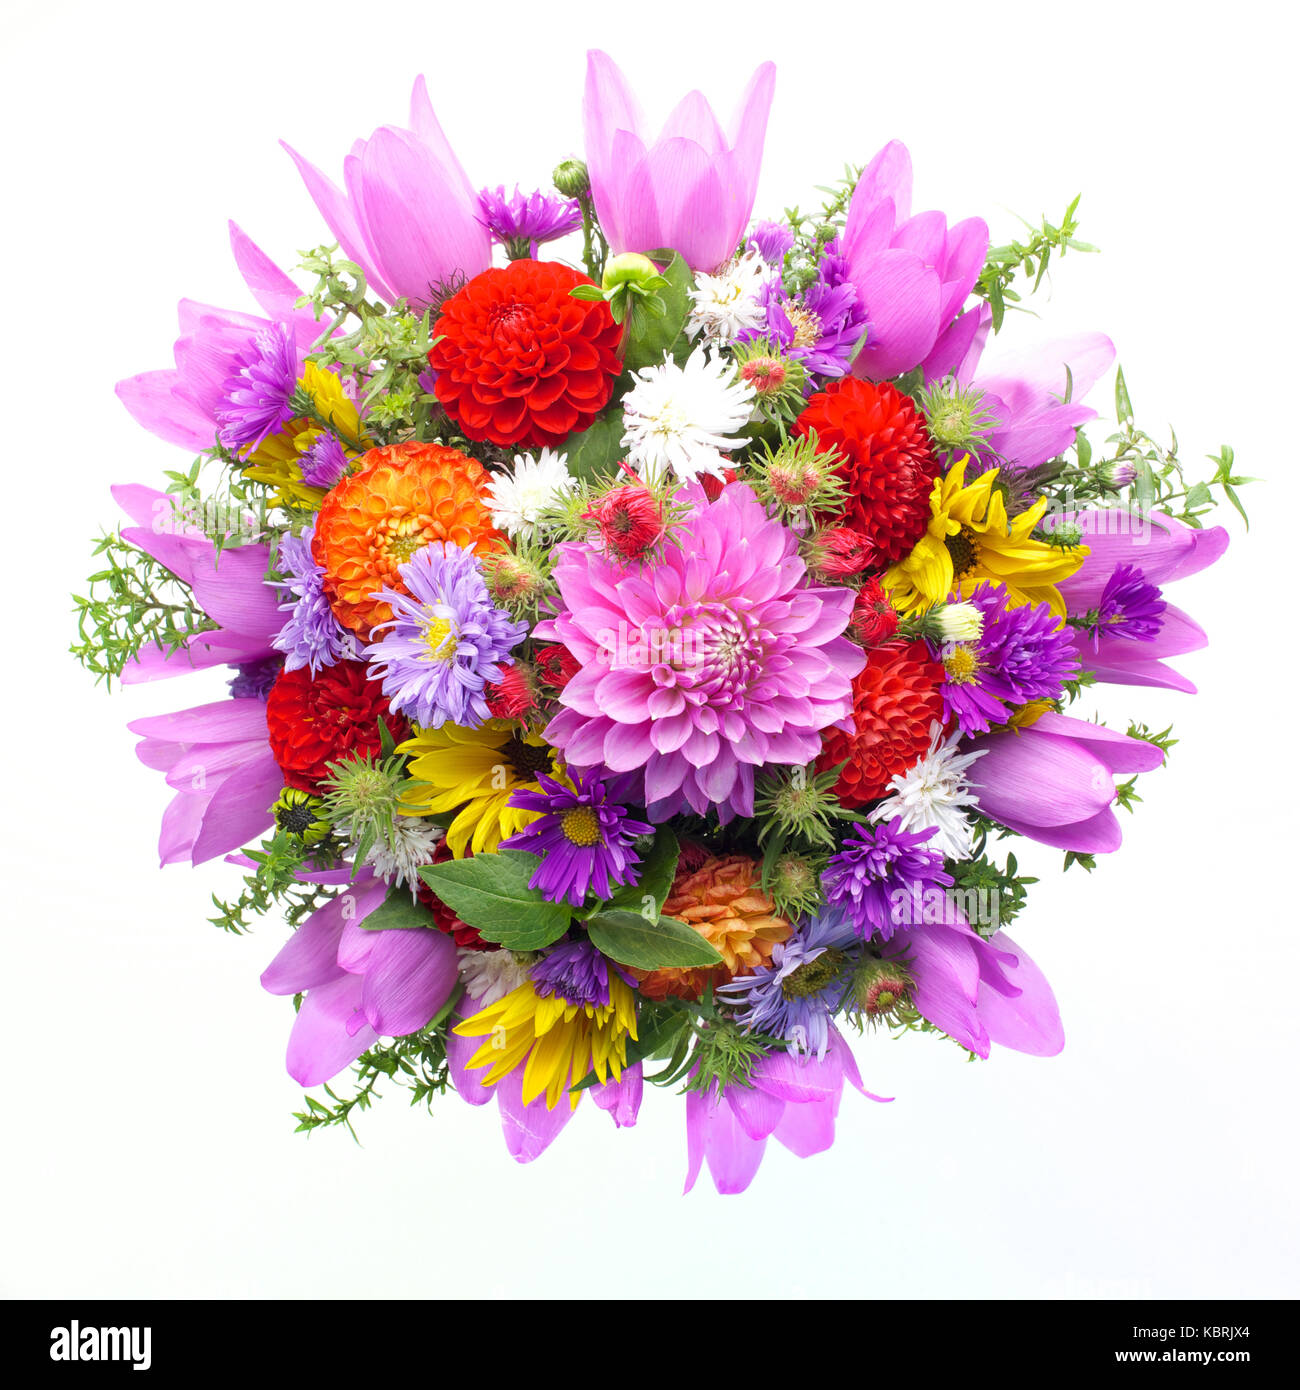 Bouquet of flowers top view isolated on white background stock photo bouquet of flowers top view isolated on white background izmirmasajfo